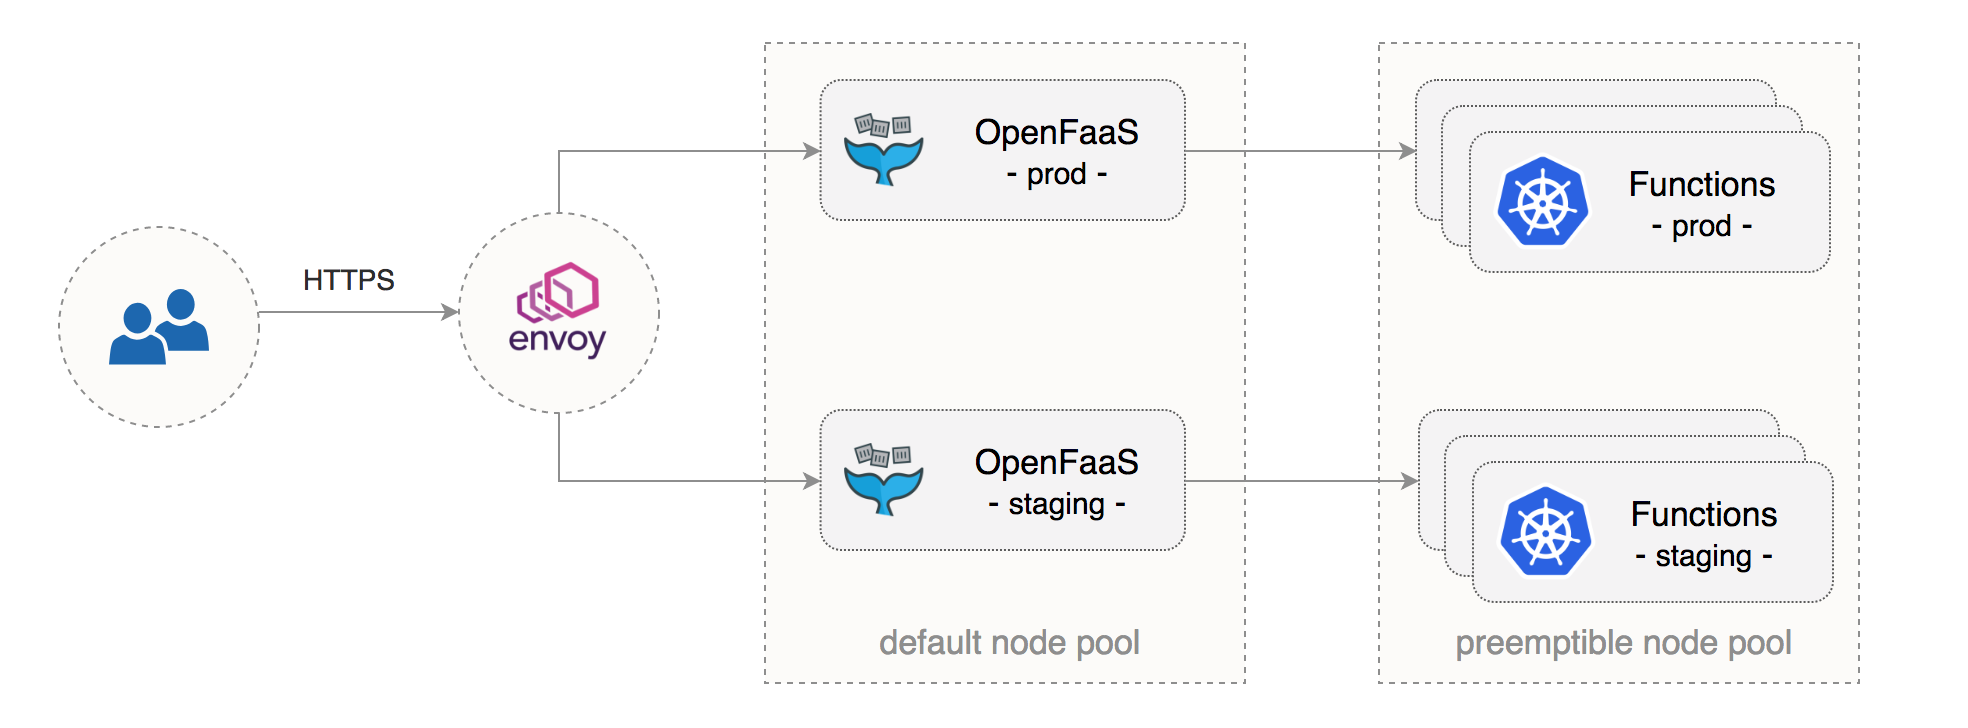 Multi-stage Serverless on Kubernetes with OpenFaaS and GKE